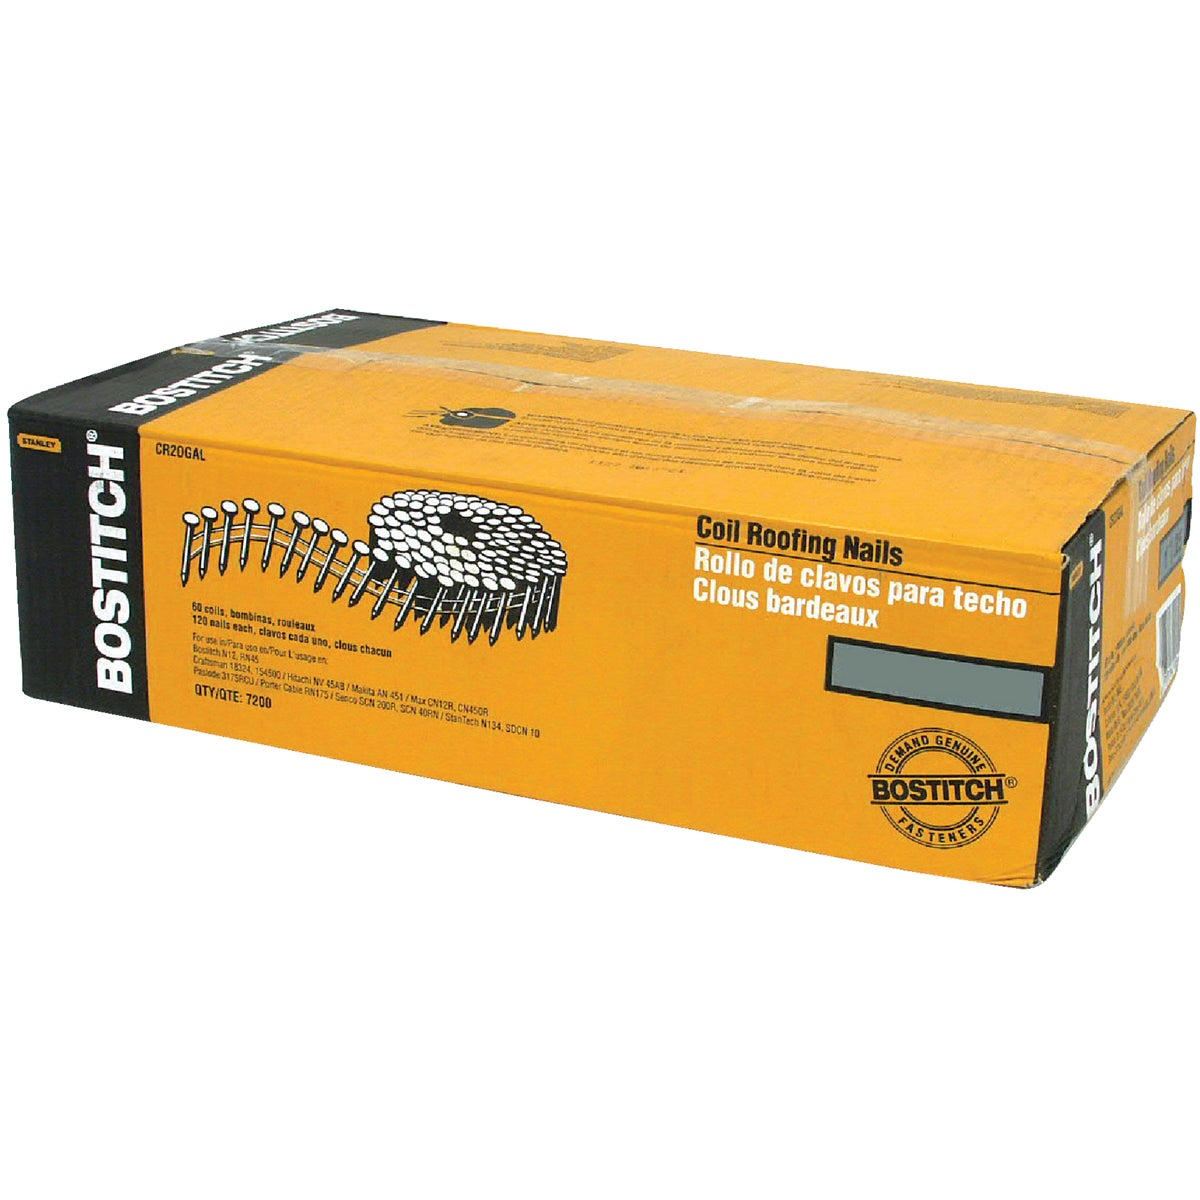 "7/8"" GALV COIL ROOF NAIL - CR2DCGAL by Stanley Bostitch"